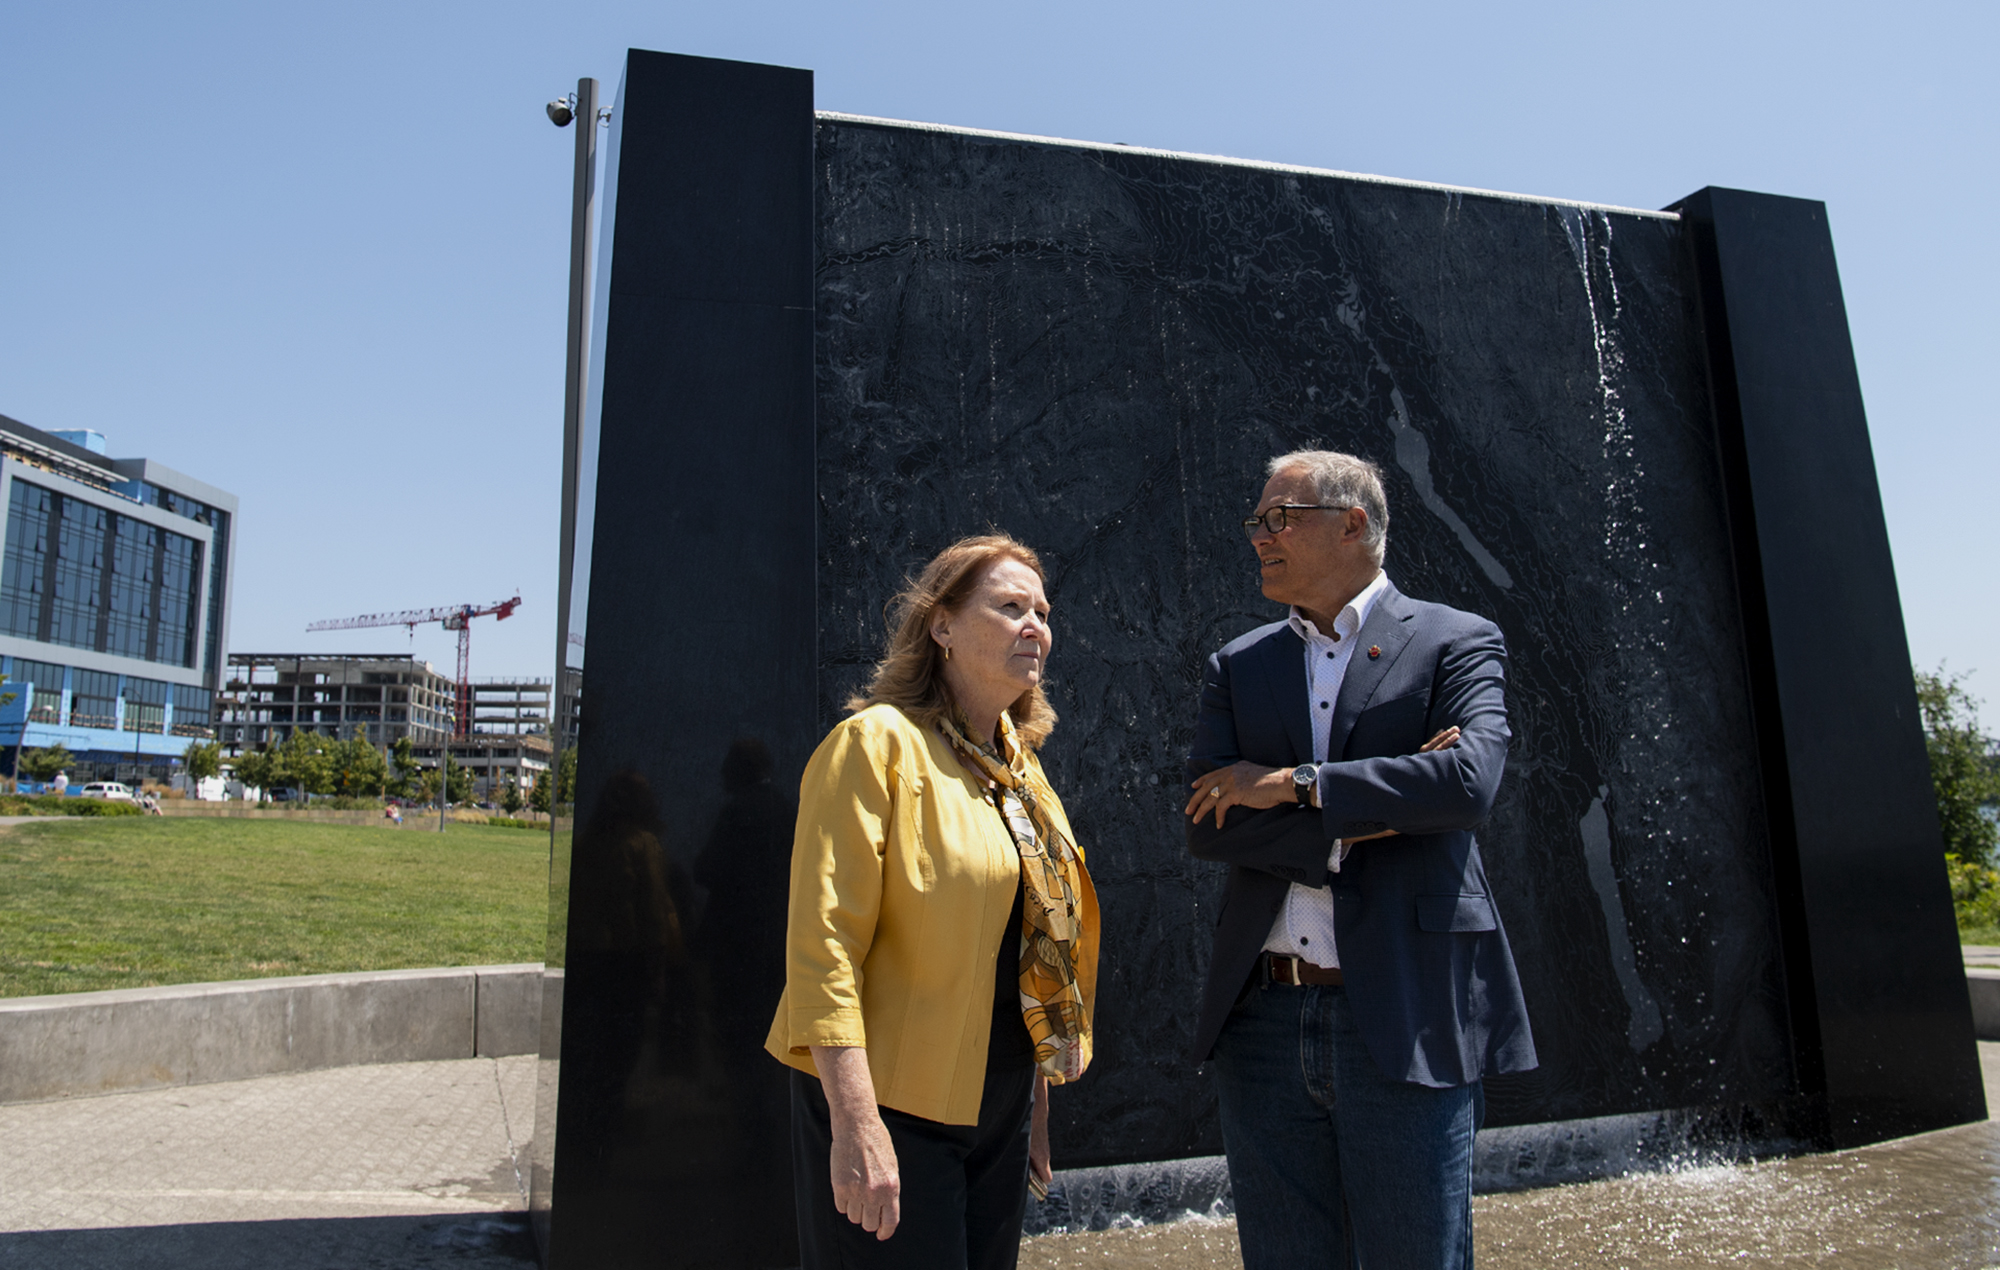 Vancouver mayor Anne McEnerny-Ogle and Washington governor Jay Inslee survey the Vancouver Waterfront while standing in front of an interactive sculpture that depicts the topography of the Columbia River on Tuesday, July 13, 2021, in Vancouver. Inslee toured the waterfront with Vancouver mayor Anne McEnerny-Ogle before meeting with local small business owners.